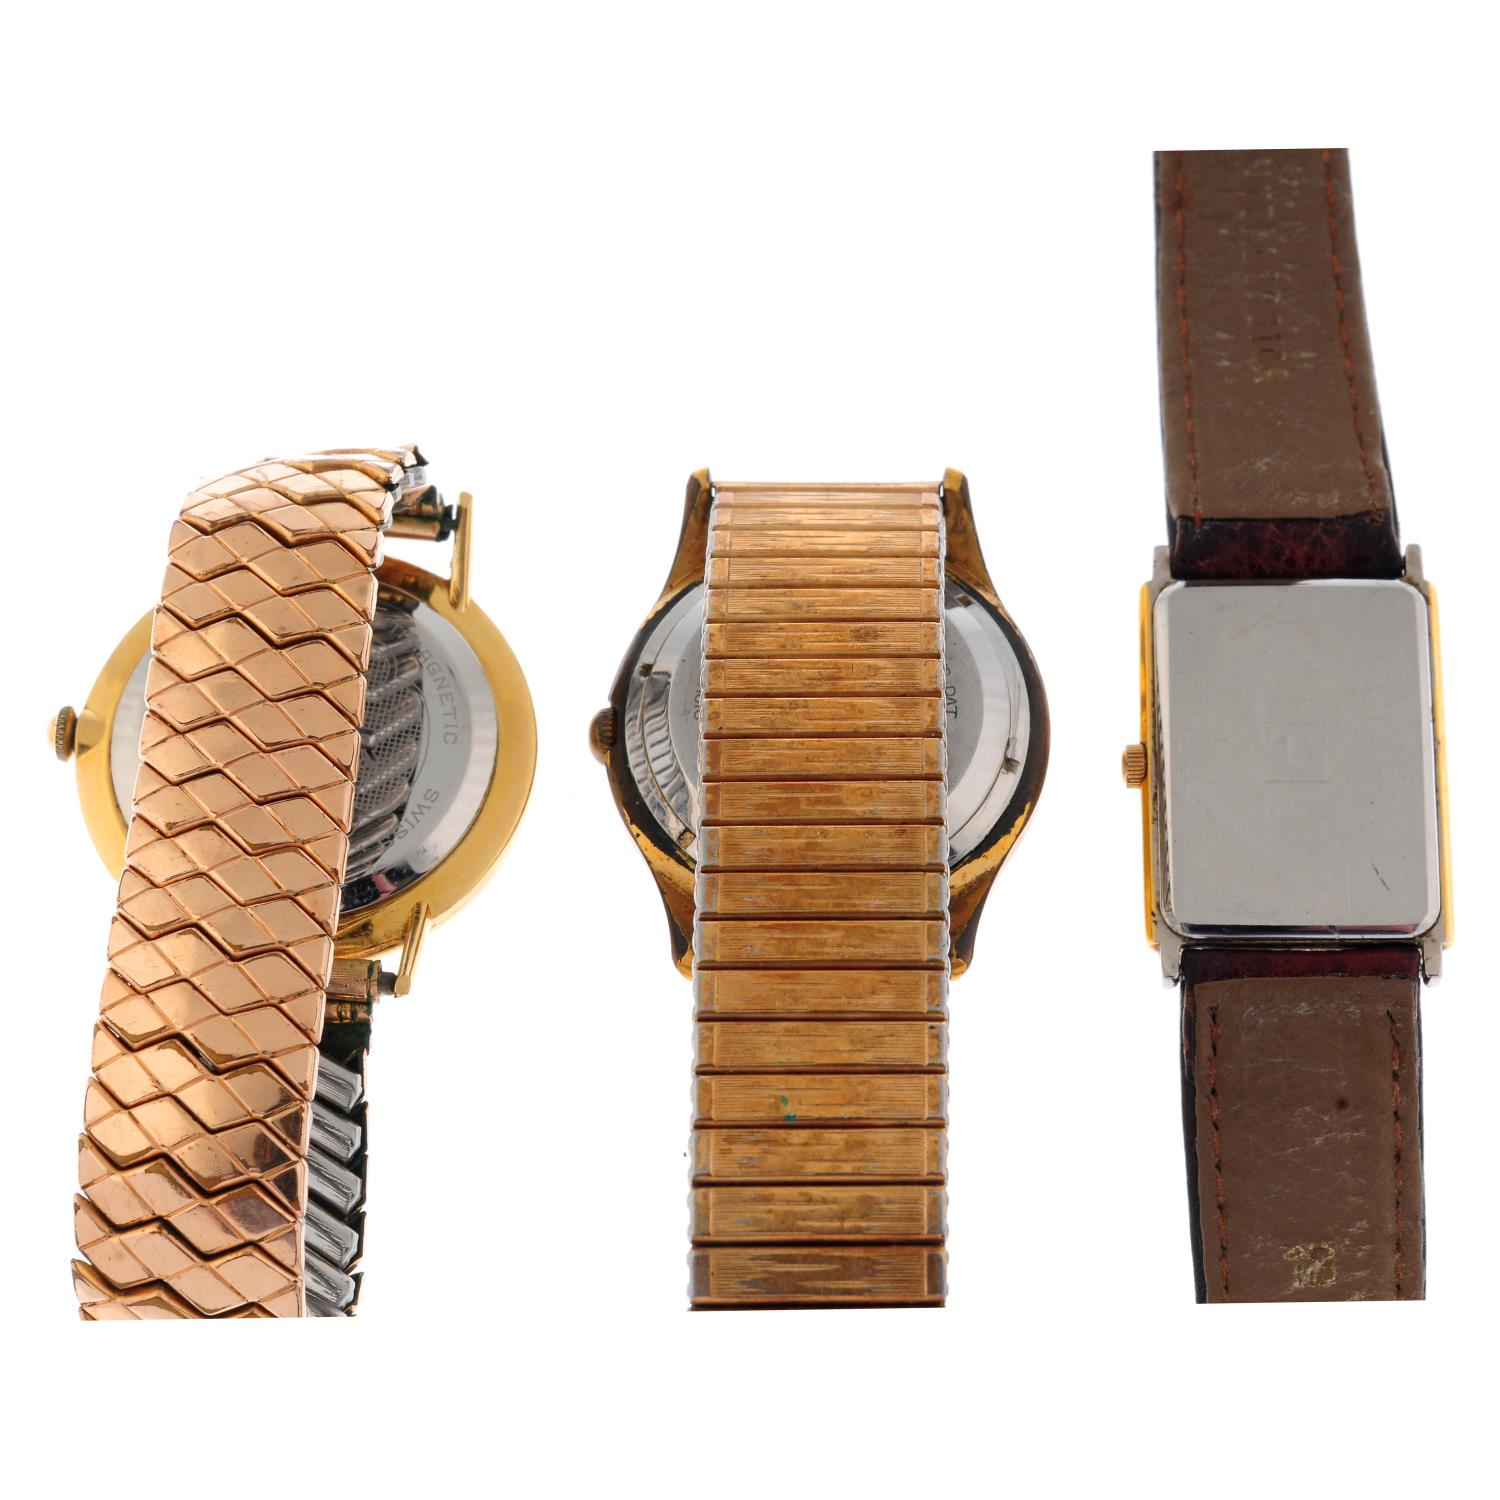 A group of five wrist watches, to include an example by Enicar and Tissot. - Image 2 of 4